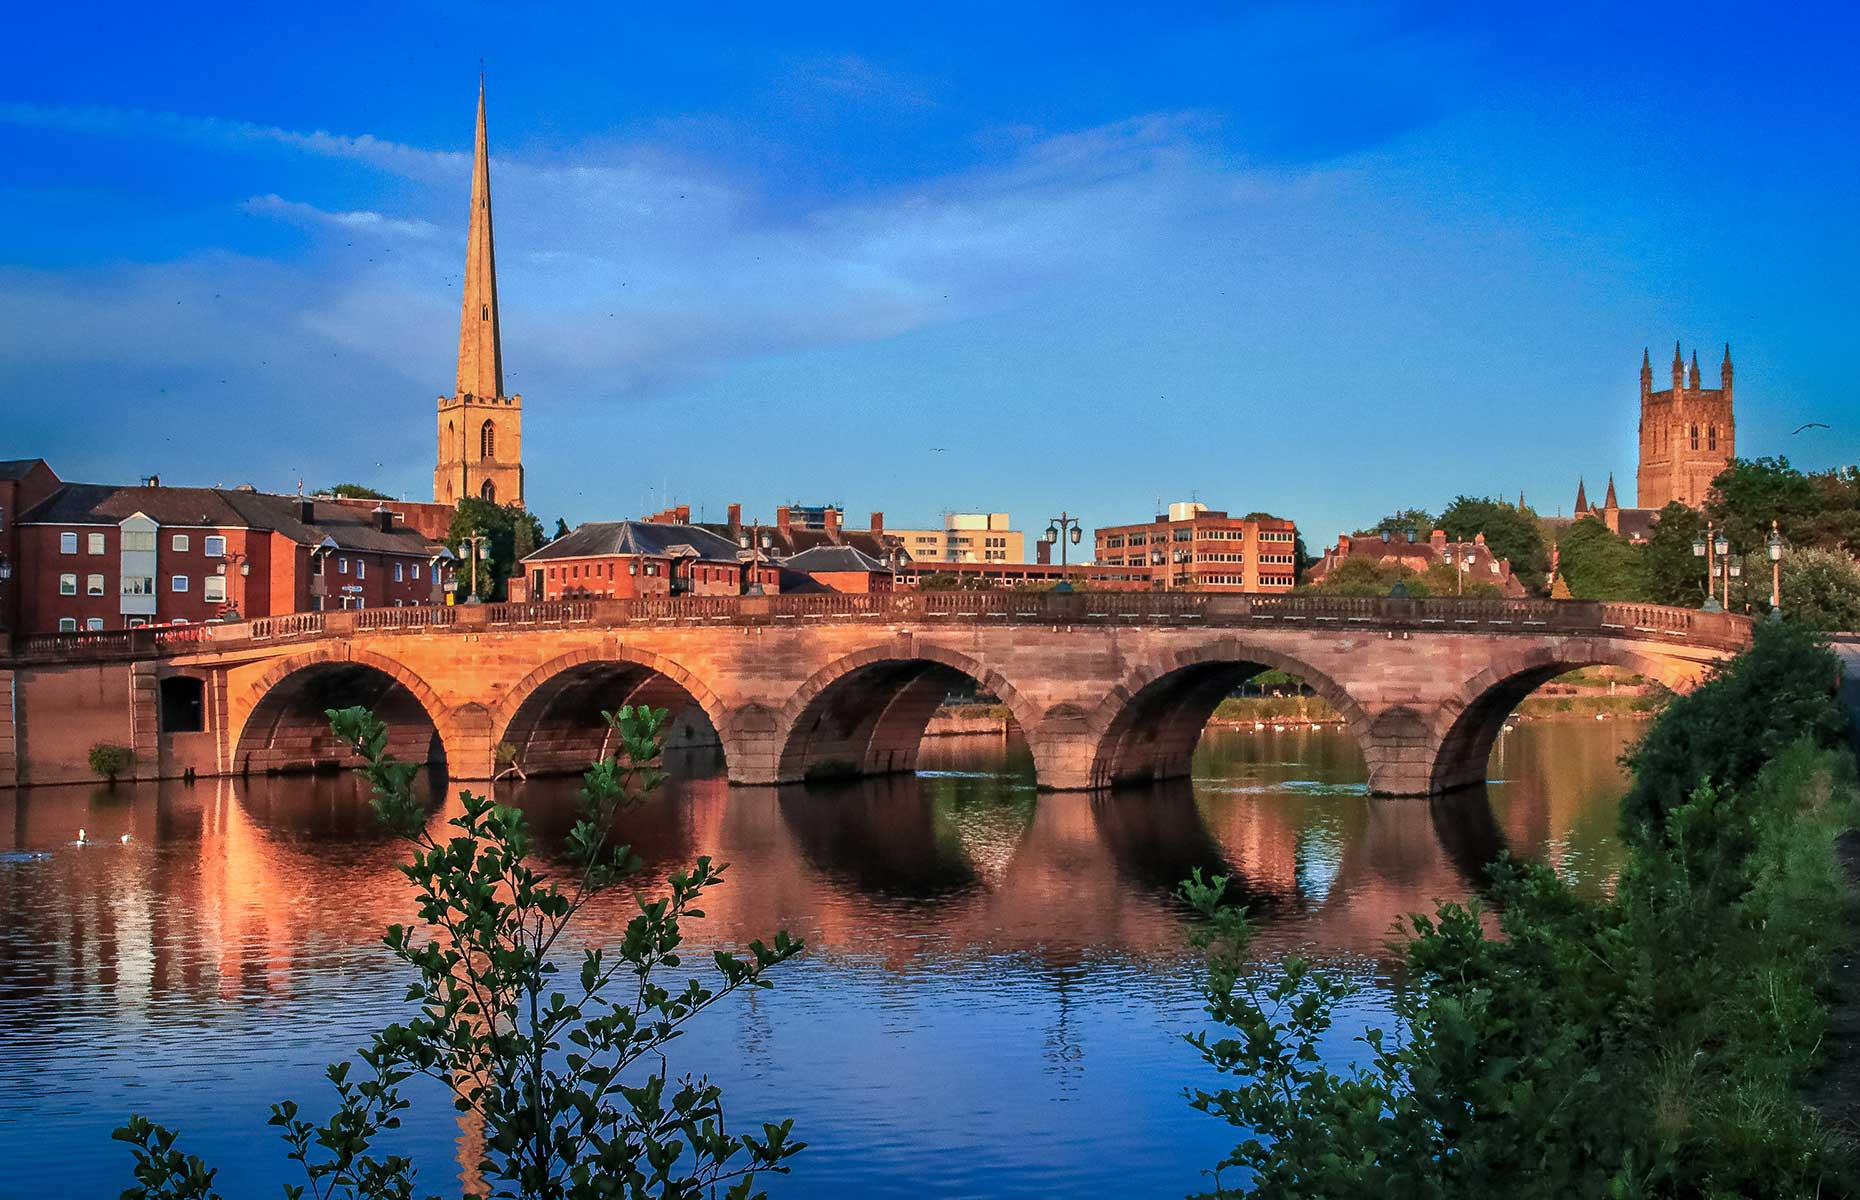 Worcester viewed from the River Severn (Image: Harry_W/Shutterstock)